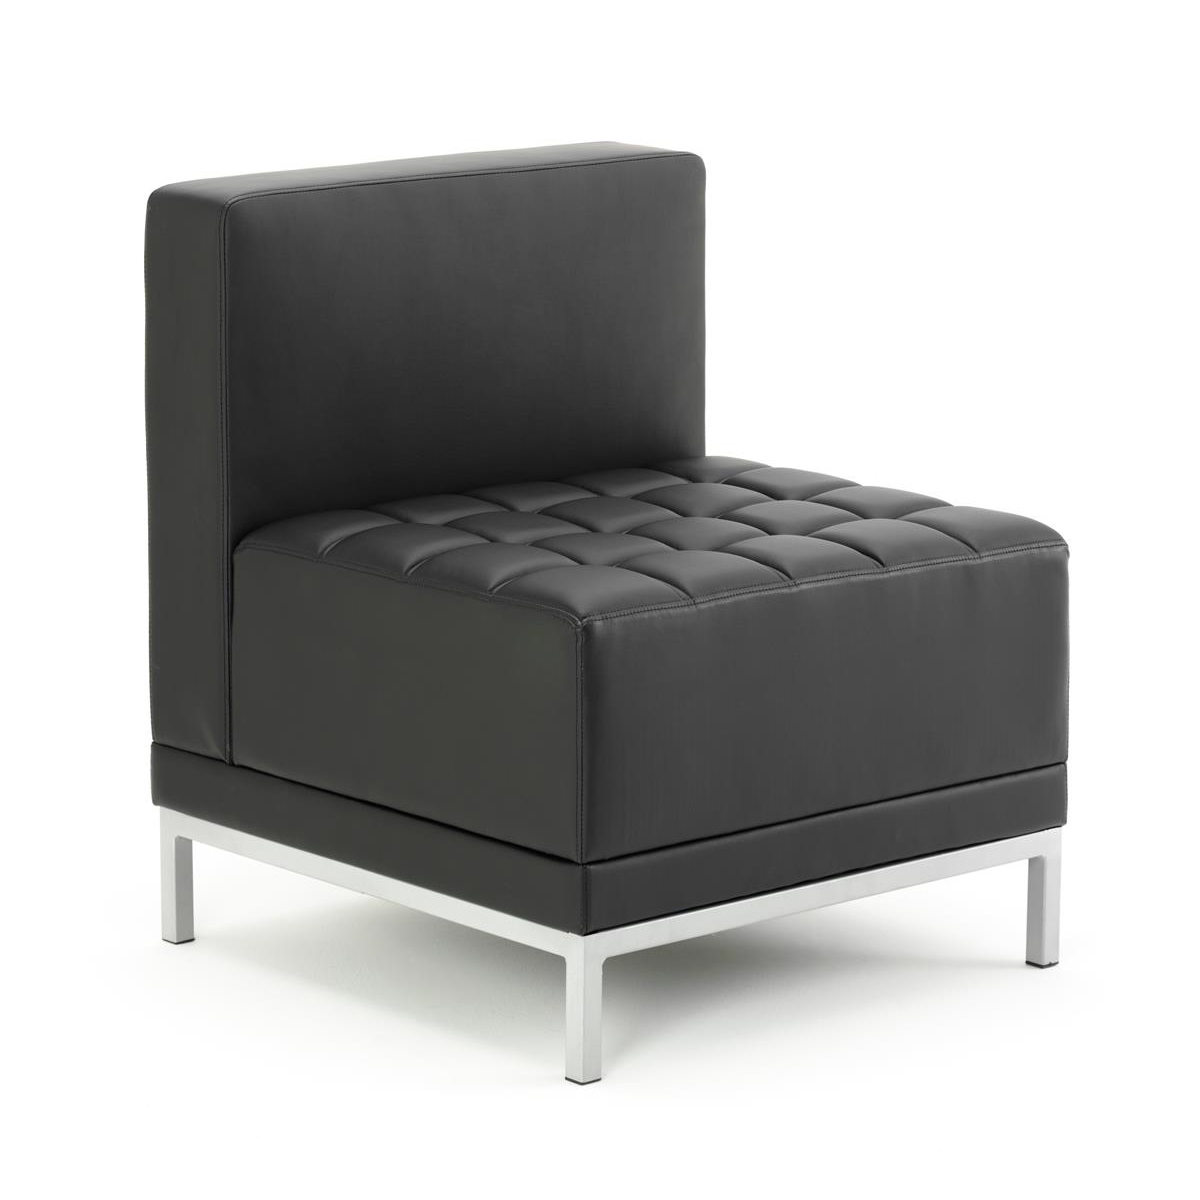 #Sonix Modular Reception Chair Bonded Leather 660x520x440mm Ref BR000200